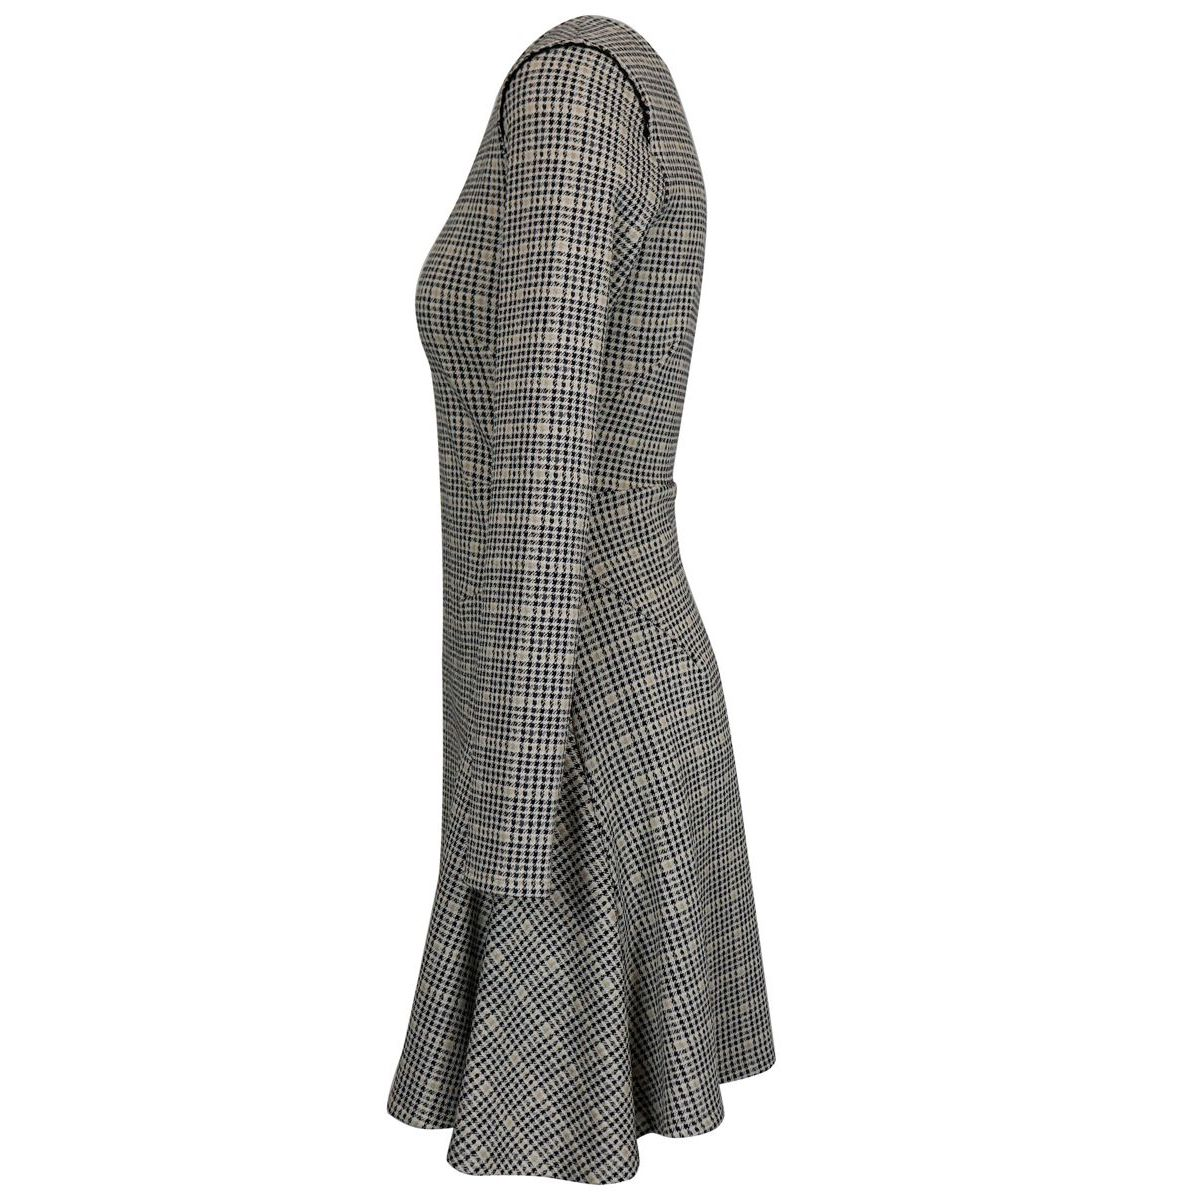 Houndstooth patterned midi dress Black / beige Patrizia Pepe